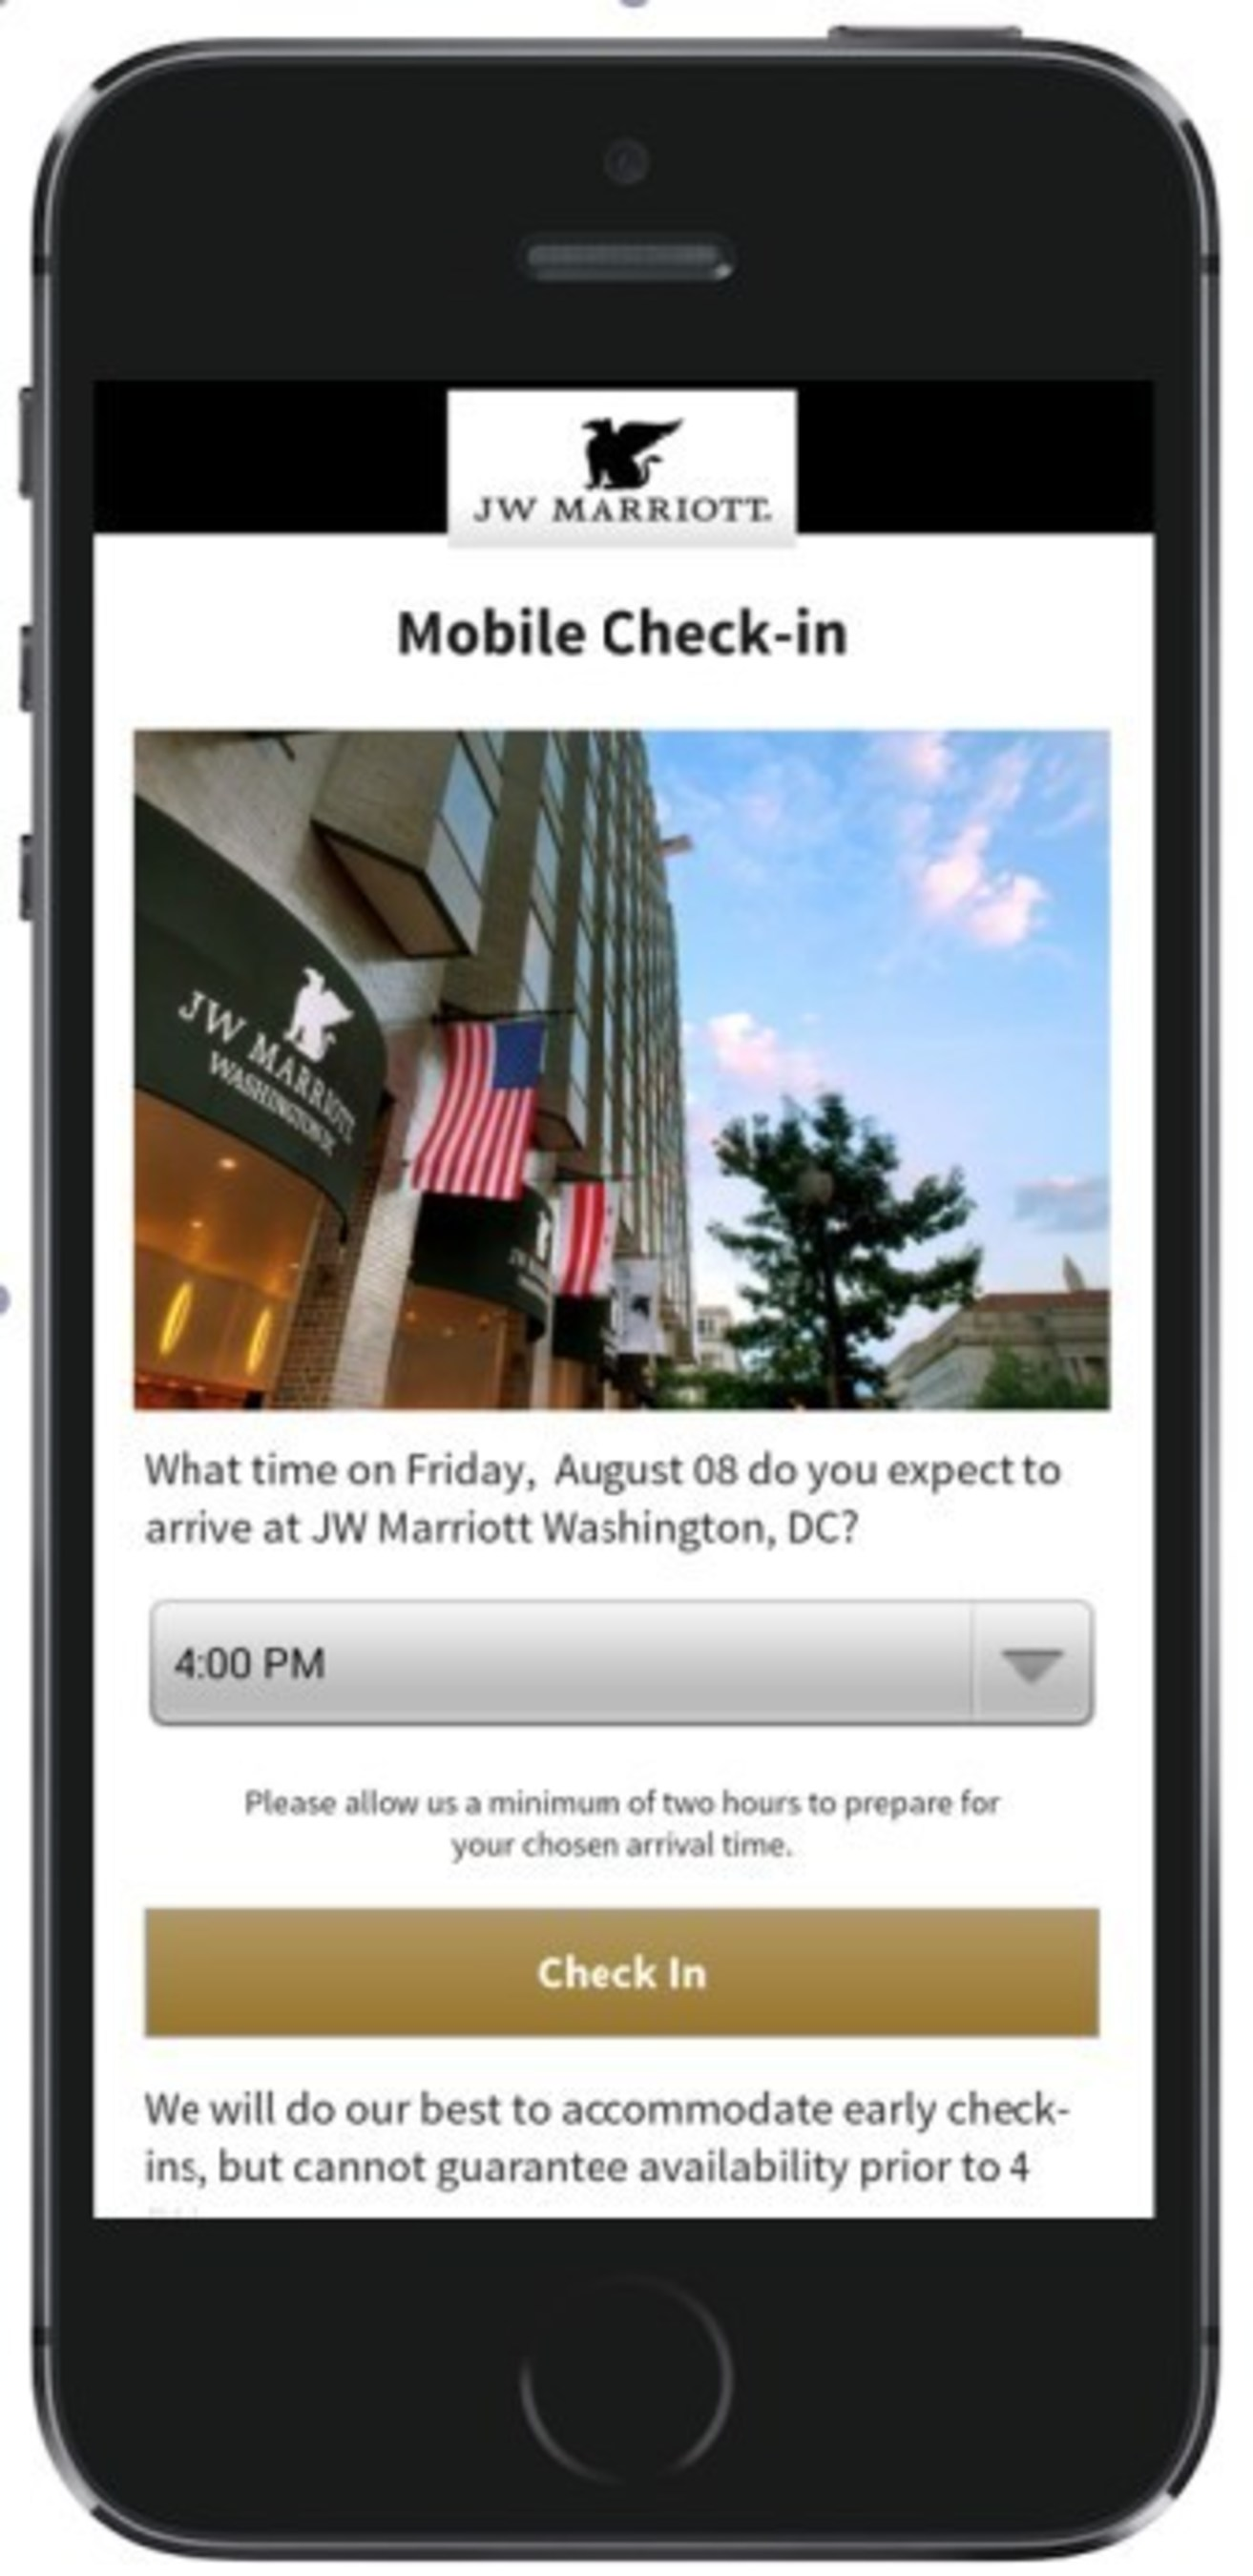 Marriott expands Mobile Check-in and Checkout Services. (PRNewsFoto/Marriott International, Inc.)